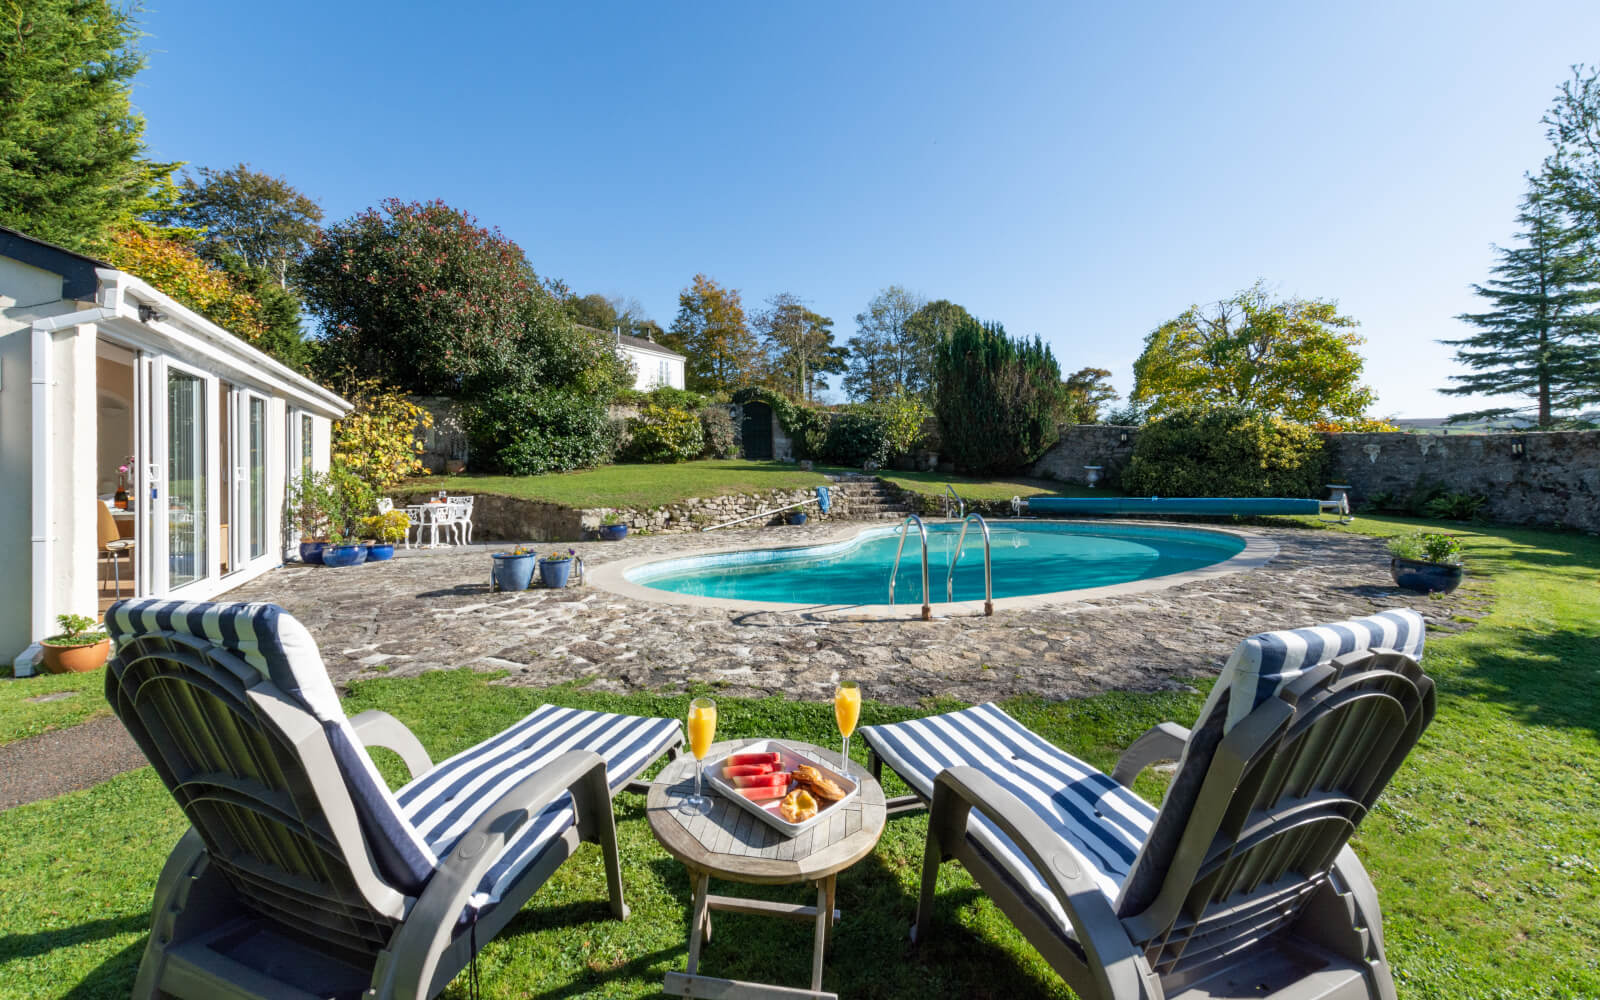 Holiday Cottages With Swimming Pools In Sandhoe To Rent - Save up to 60%